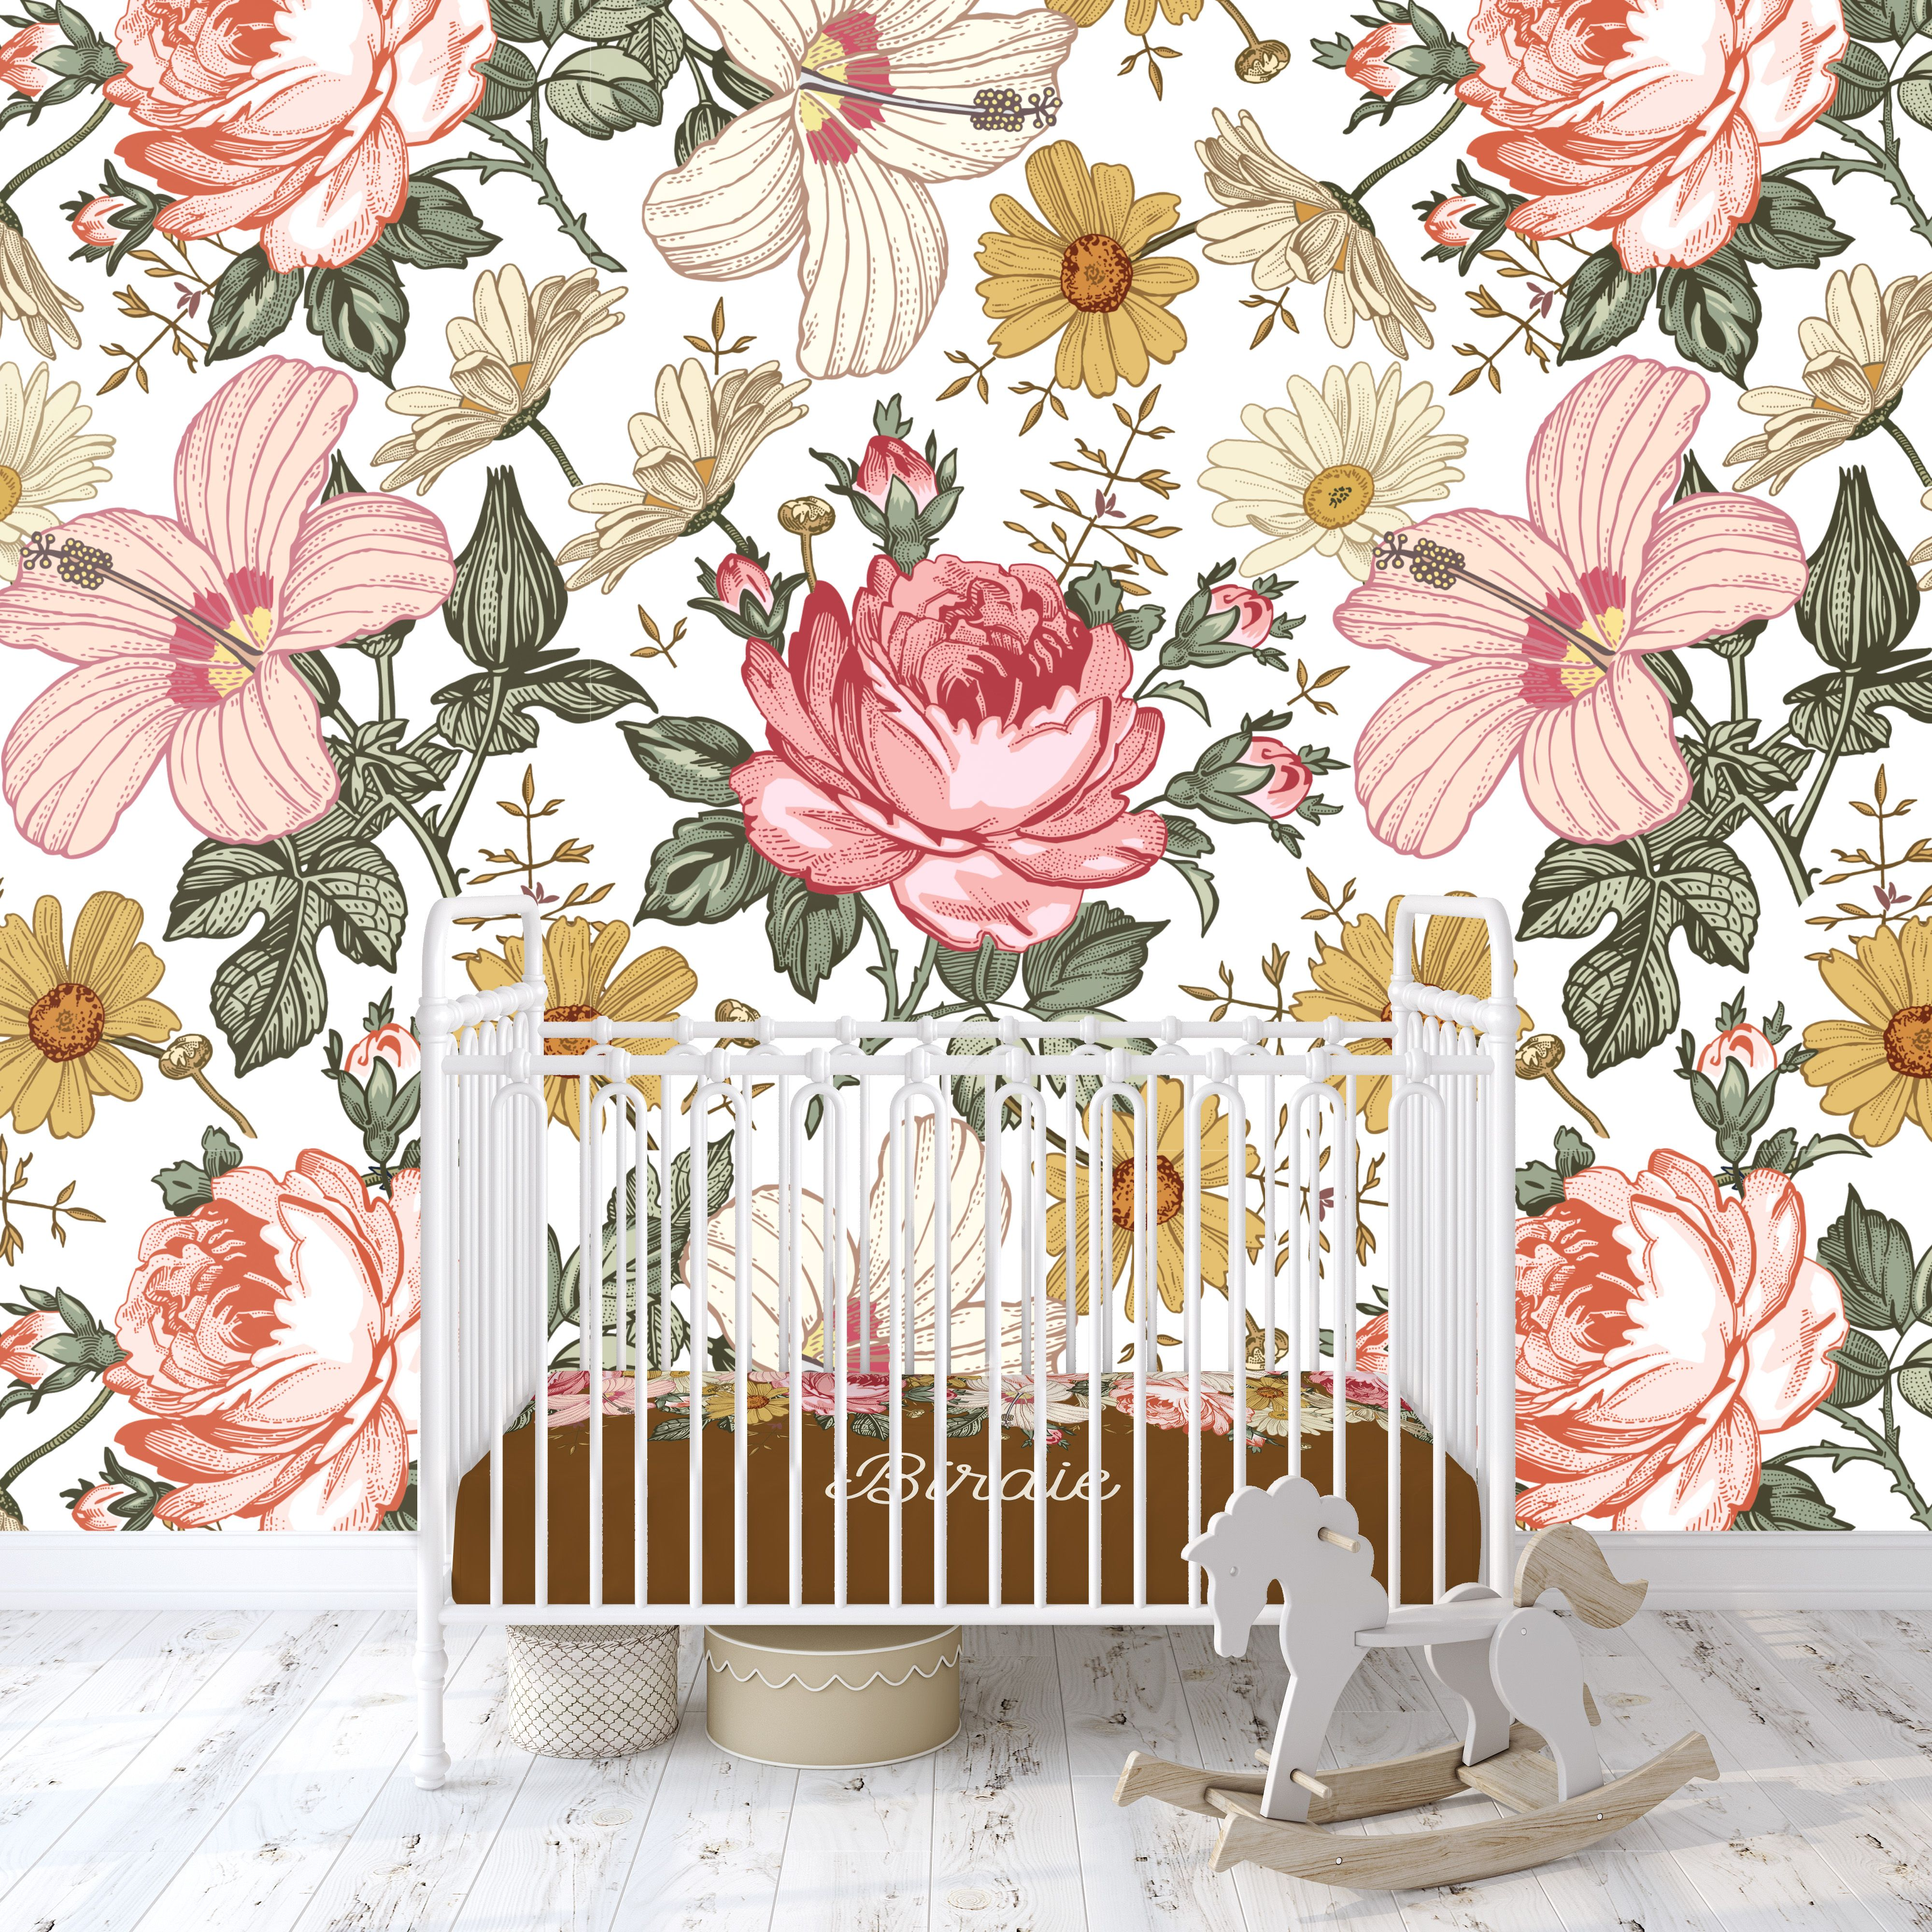 Birdie Wallpaper in 2020 Vintage floral wallpapers, Baby